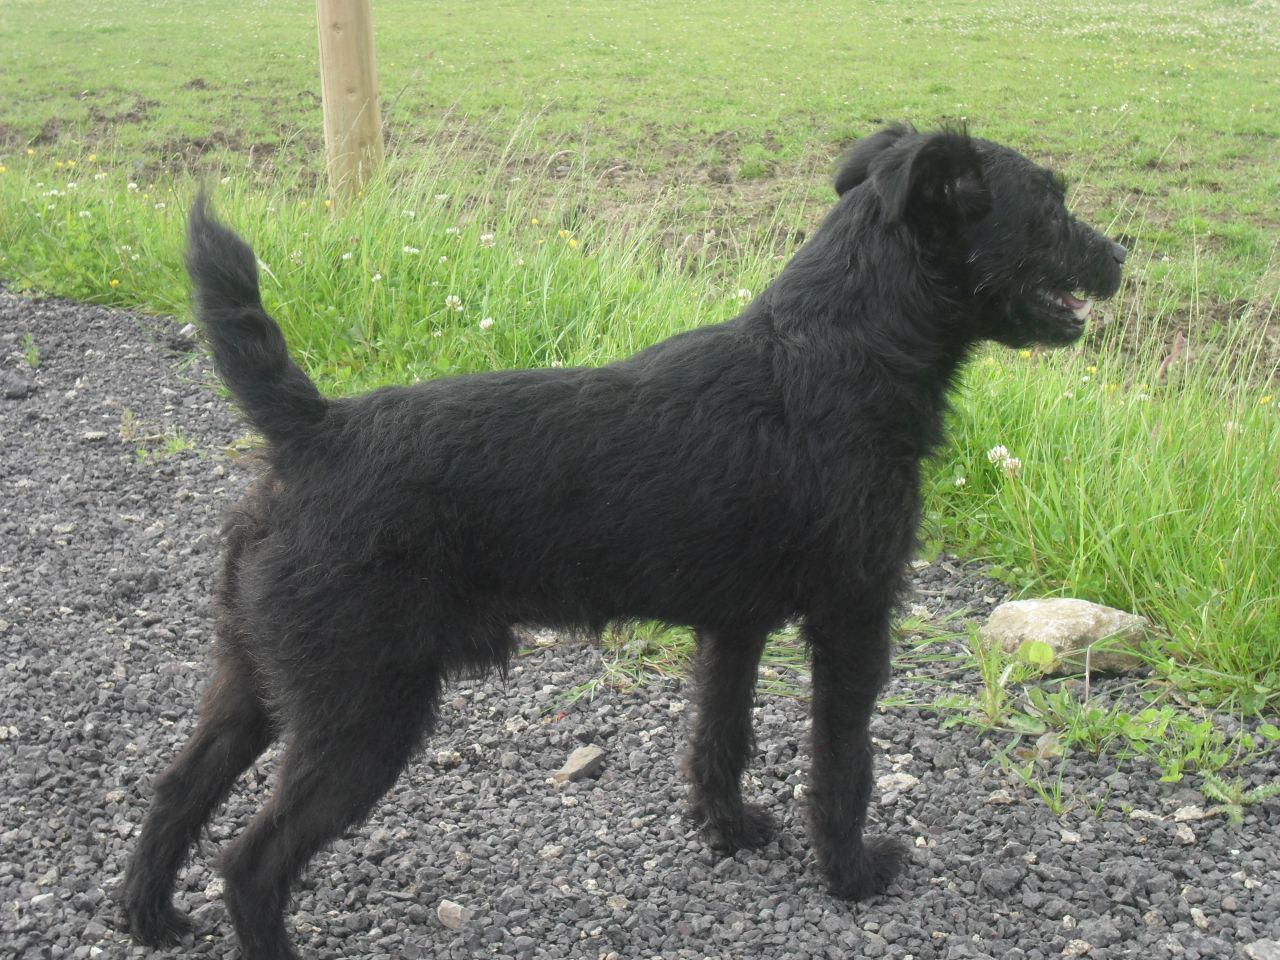 For Stud Black Rough Coated Patterdale Dog 5366a554d4815 Jpg 1280 960 Patterdale Terrier Terrier Dogs